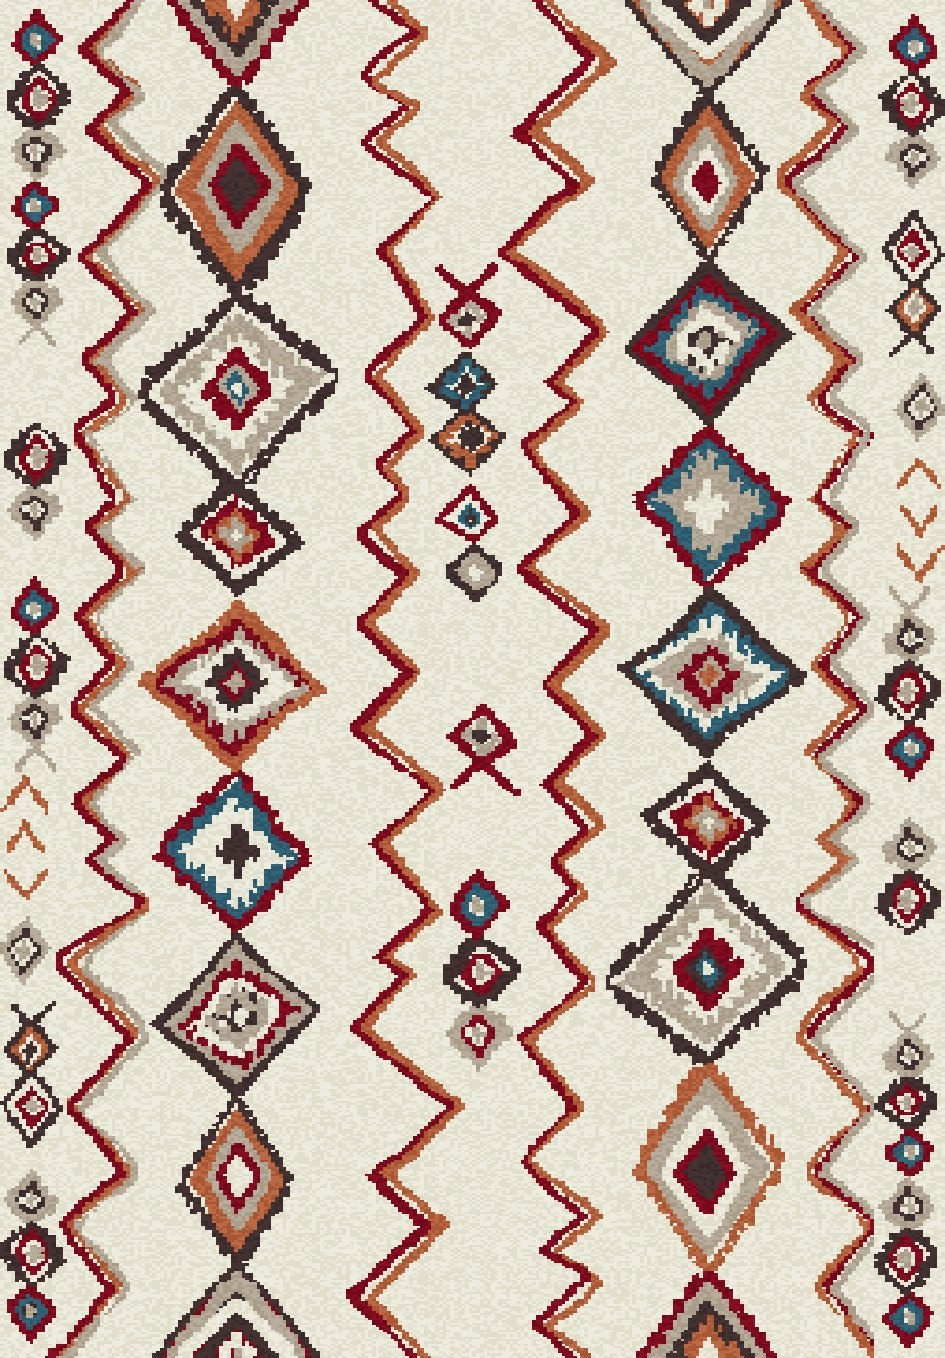 Dynamic Rugs Nomad Global Ivory/multi 6228 Area Rug